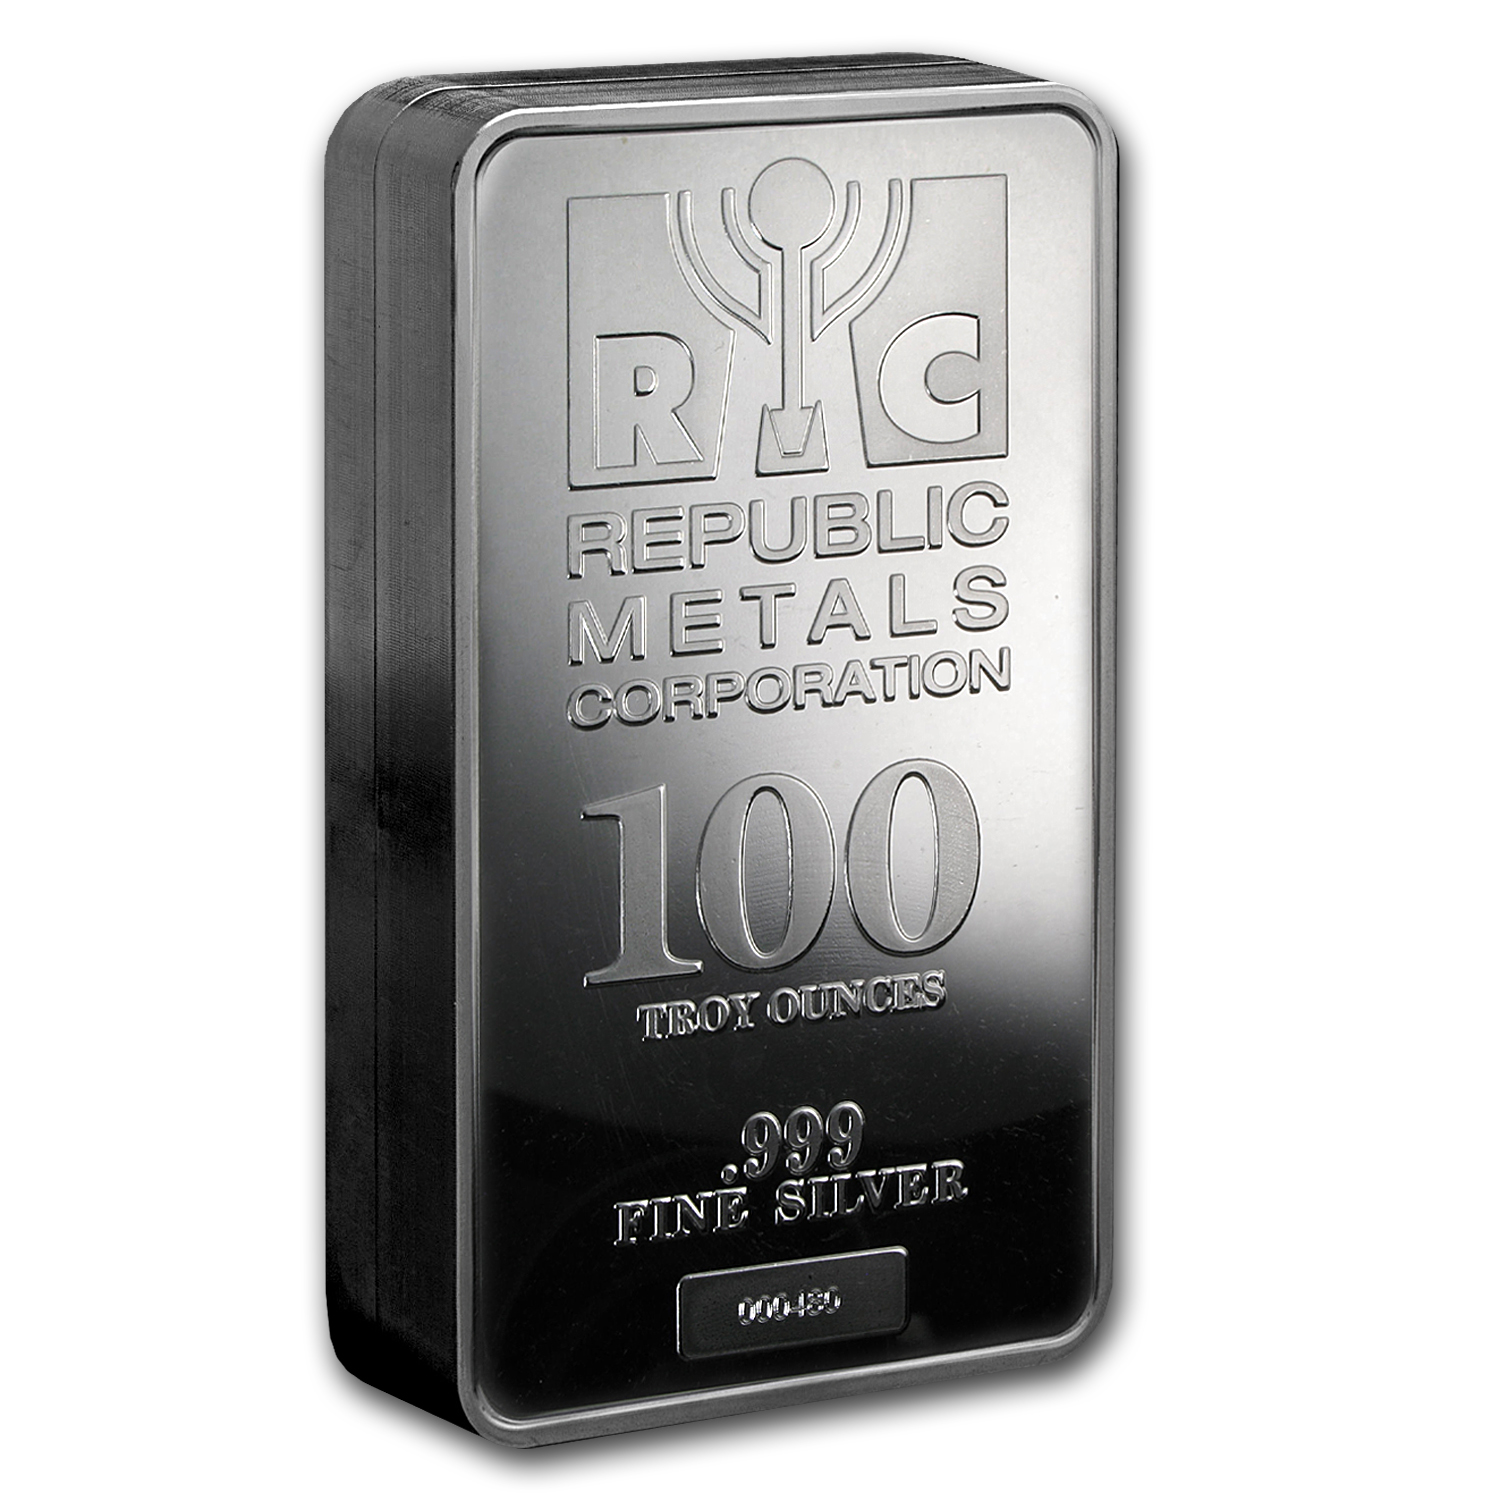 100 oz Silver Bar - Republic Metals Corp.